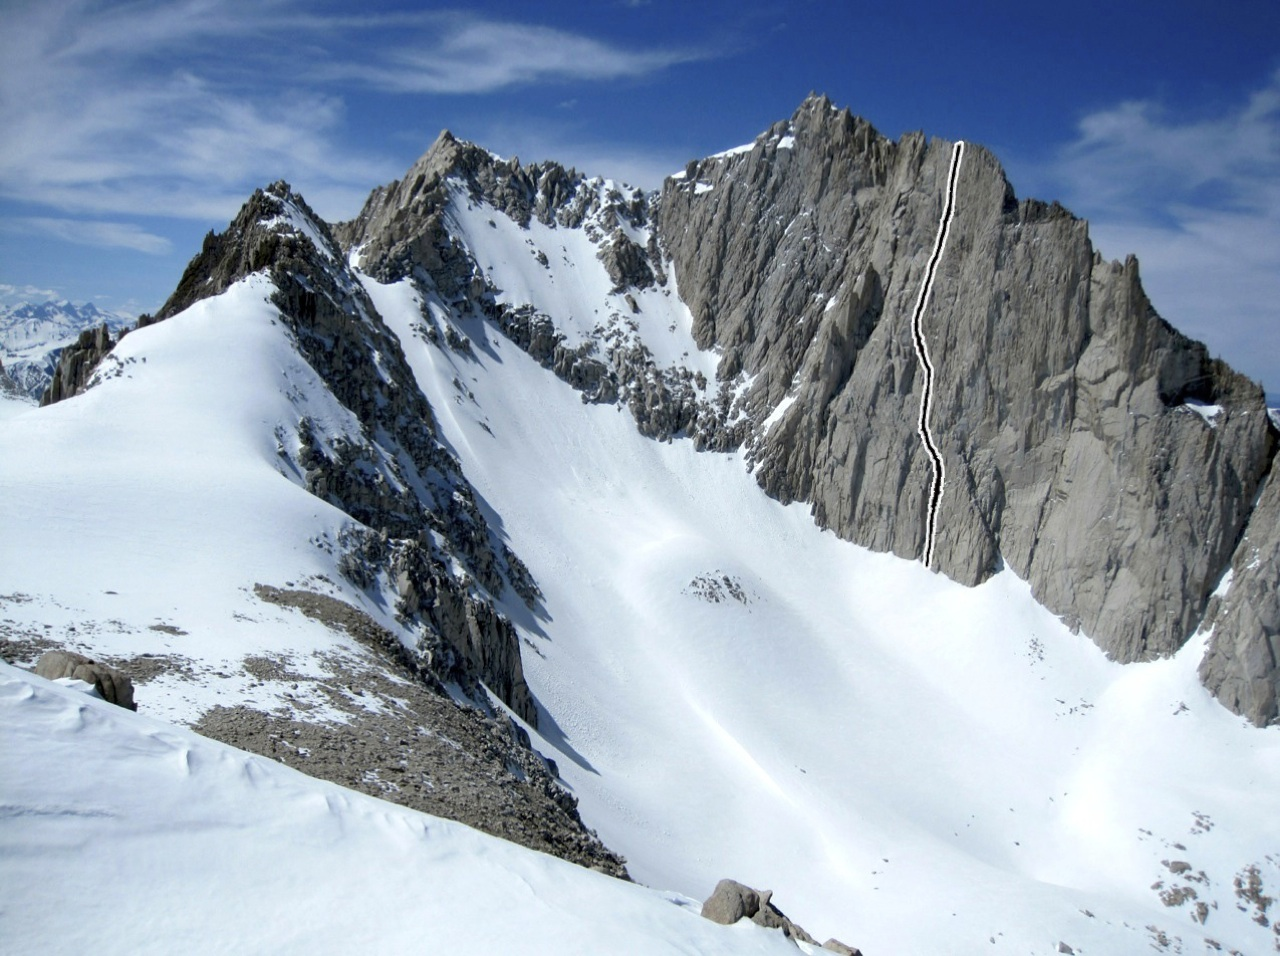 The south face of Bear Creek Spire, showing Jamaica Say You Will.